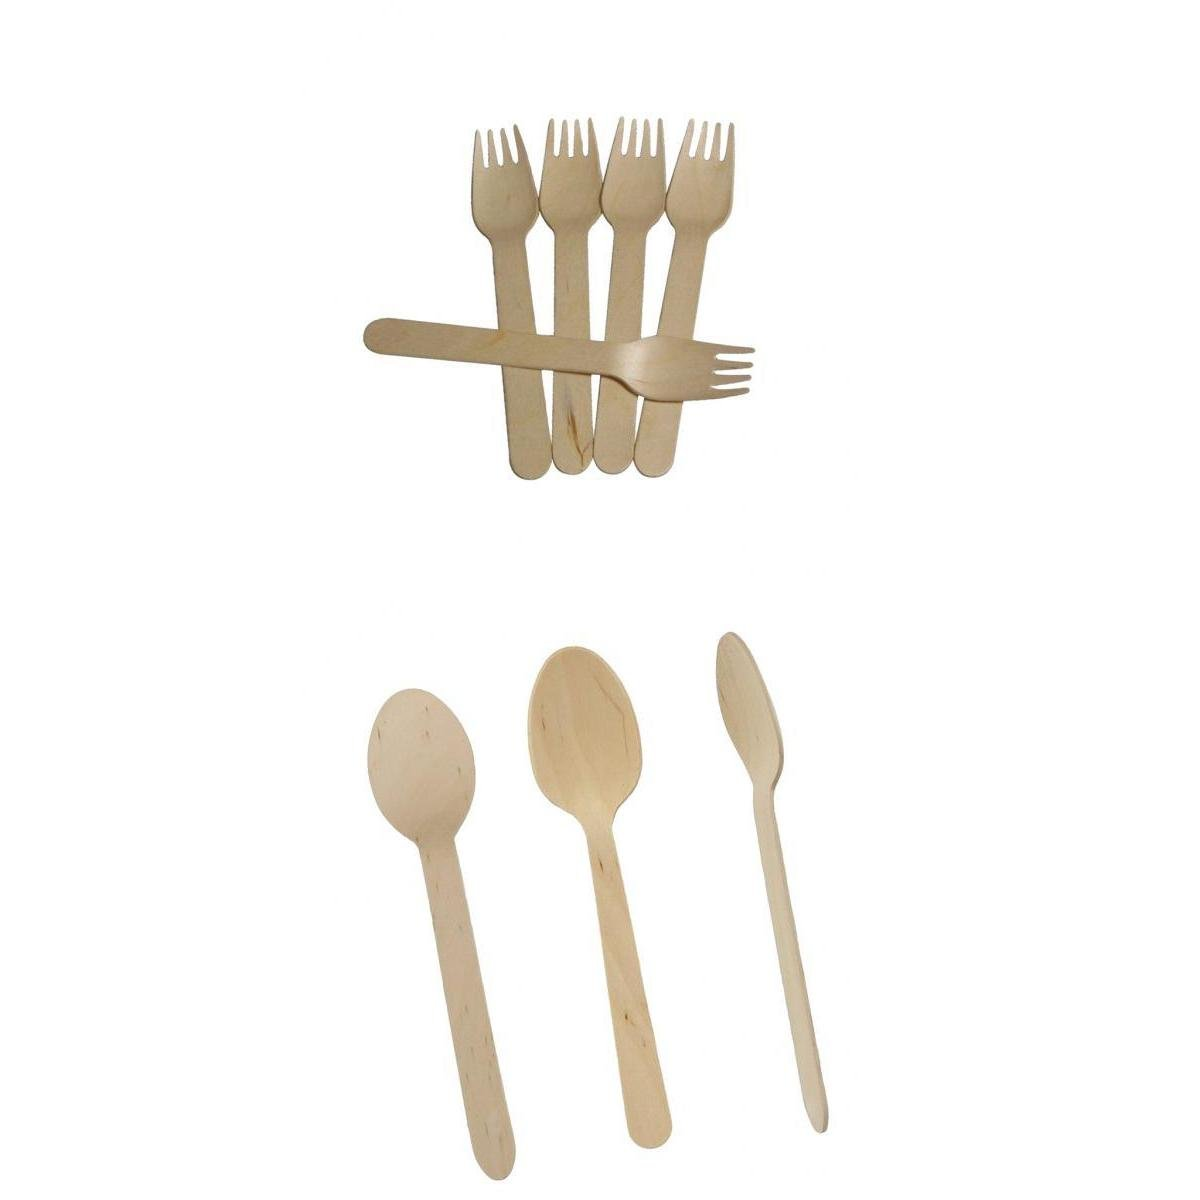 MagiDeal 100pcs Wooden Spoon 100pcs Forks Disposable Biodegradable Party BBQ Utensil